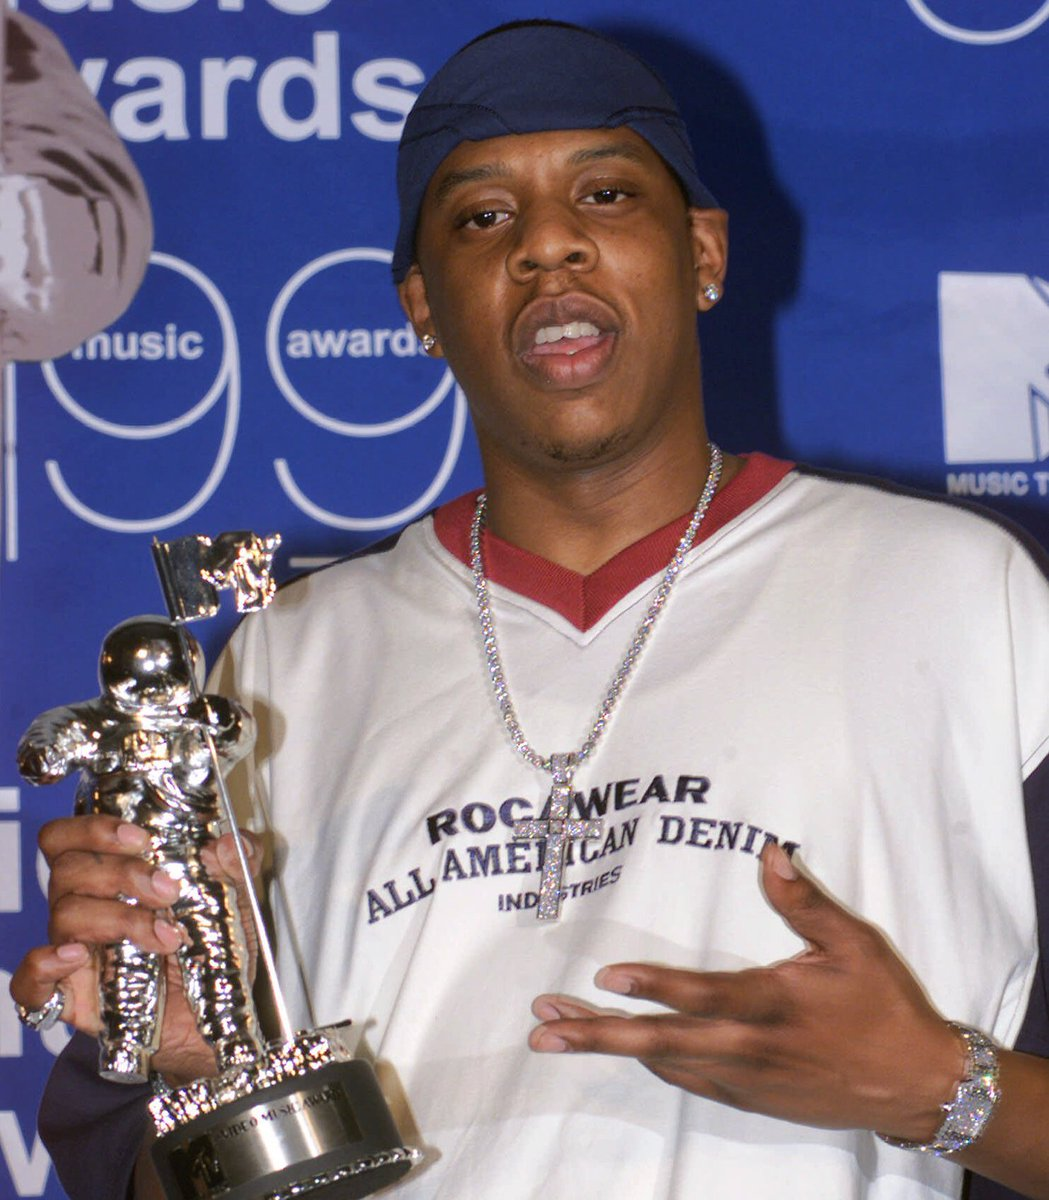 Jay z daily on twitter 2001 just days before the release of his jay z daily on twitter 2001 just days before the release of his 6th studio album the blueprint jay z delivered an outdoor performance of the 1st malvernweather Images